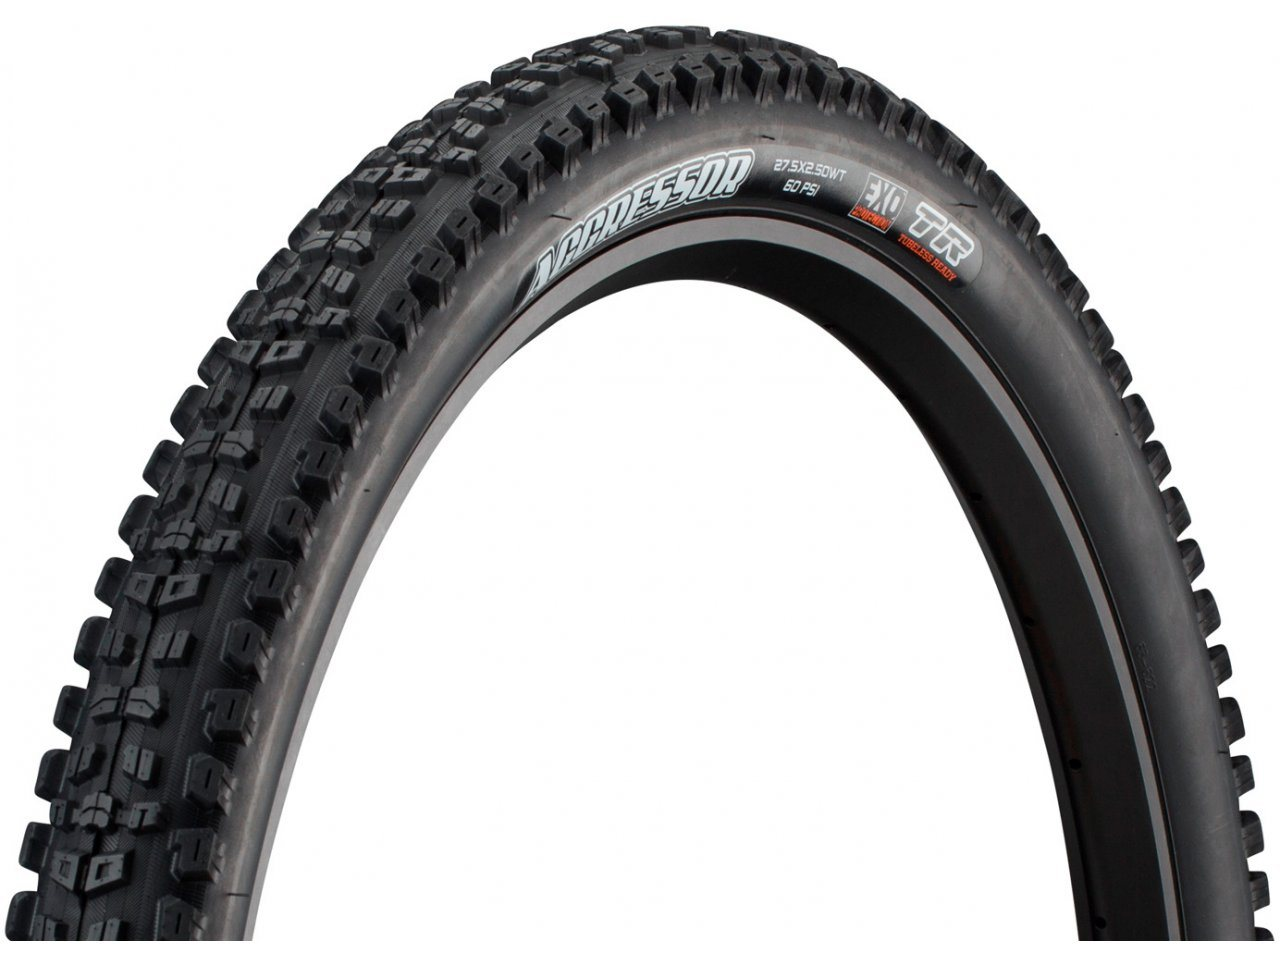 "Maxxis Aggressor Tire 27.5 x 2.5/"" 60tpi Dual Compound EXO Casing Tubeless Ready"